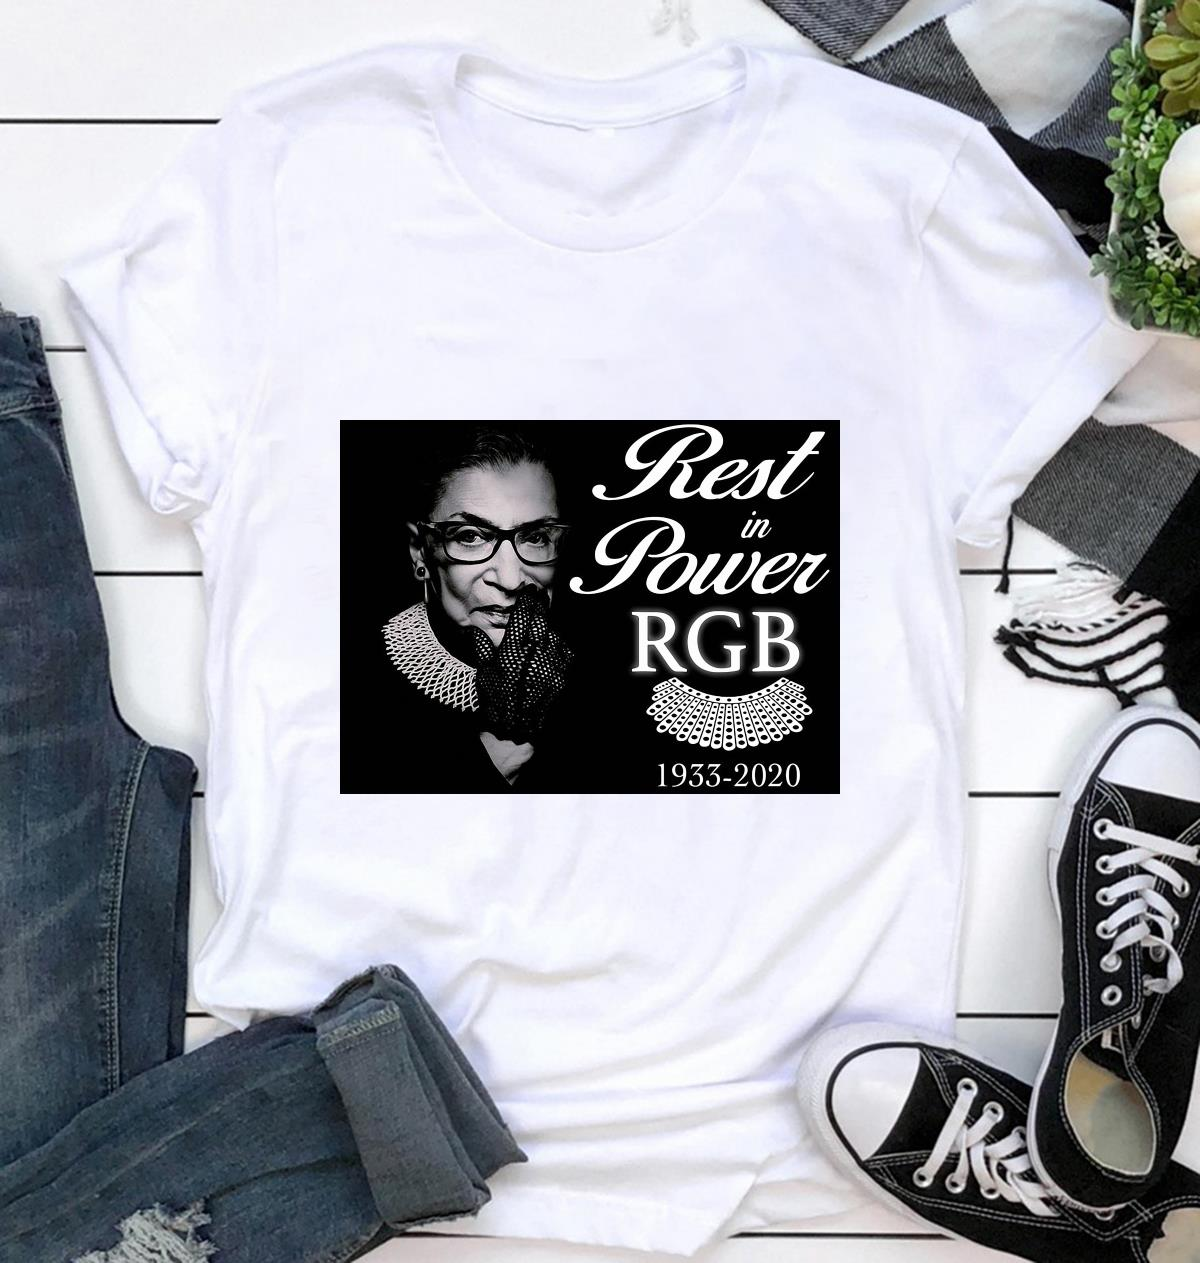 Rest in power RBG 1933-2020 yard sign ca